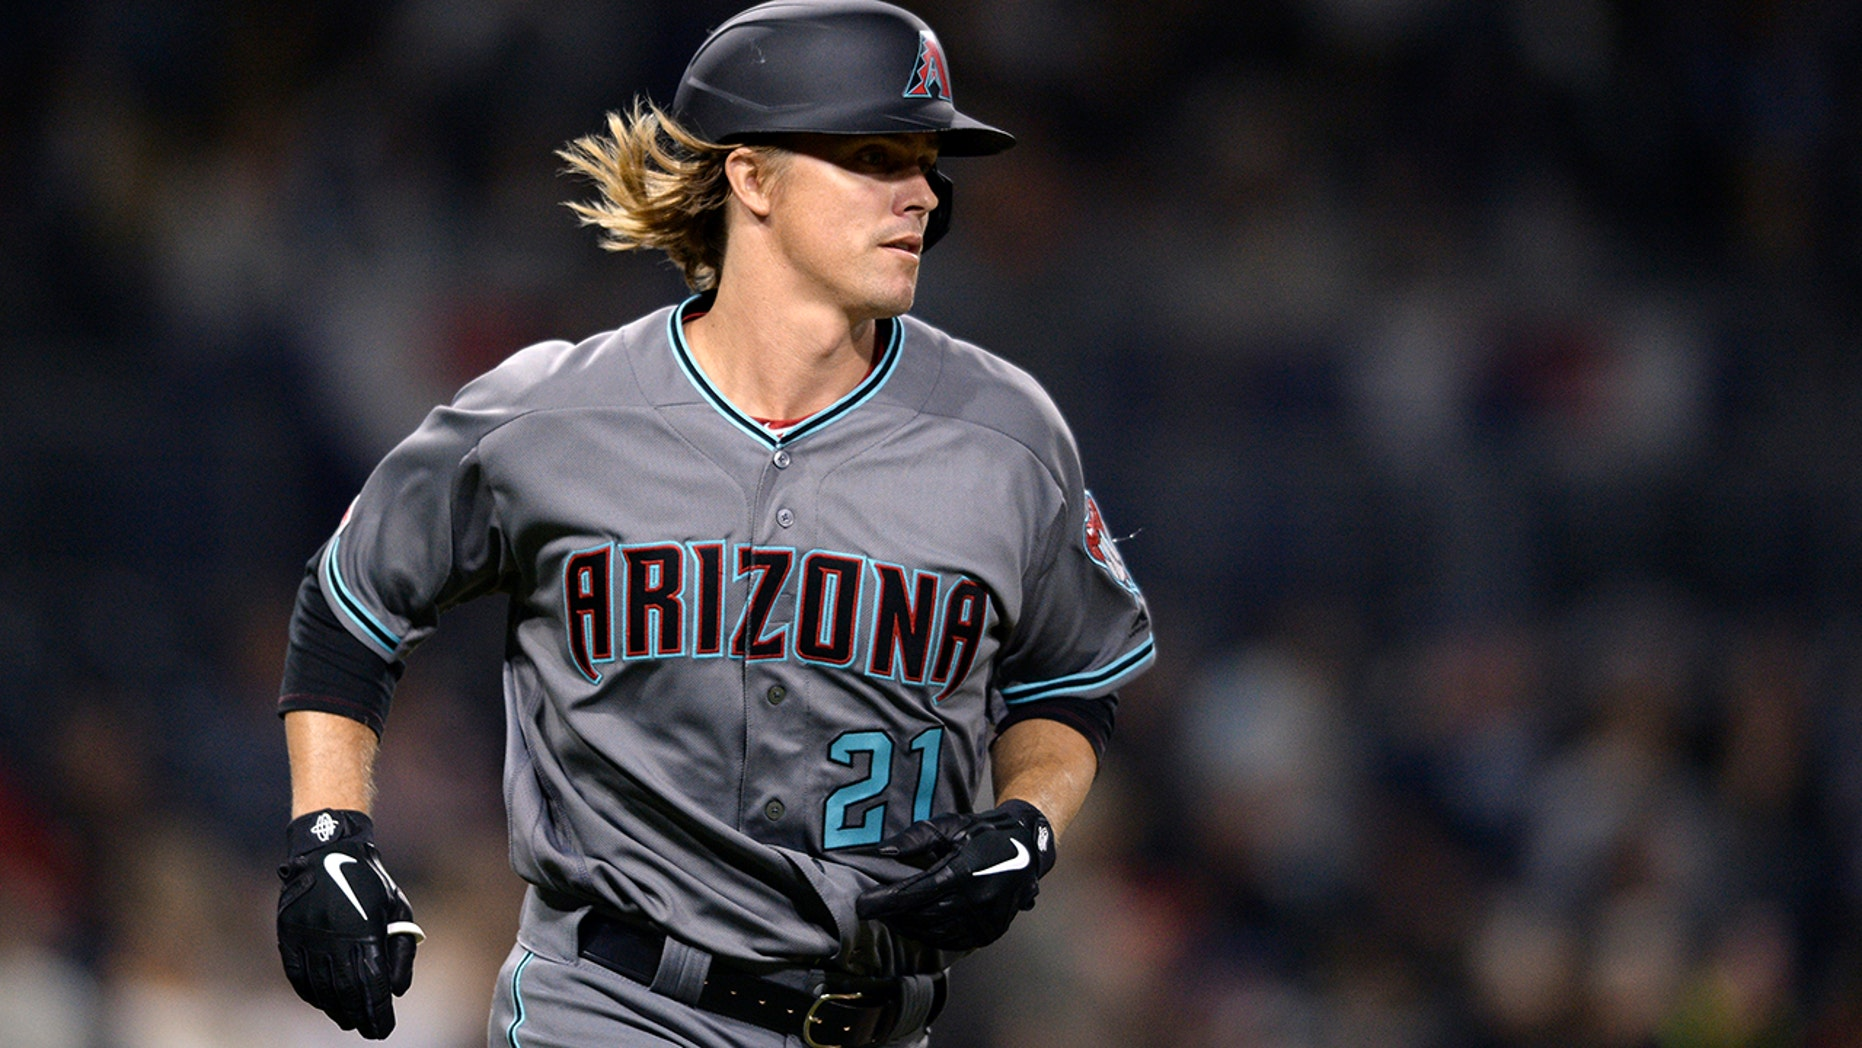 Arizona Diamondbacks' Zack Greinke runs the bases after hitting a home run during the sixth inning of a baseball game against the San Diego Padres, Tuesday, April 2, 2019, in San Diego.